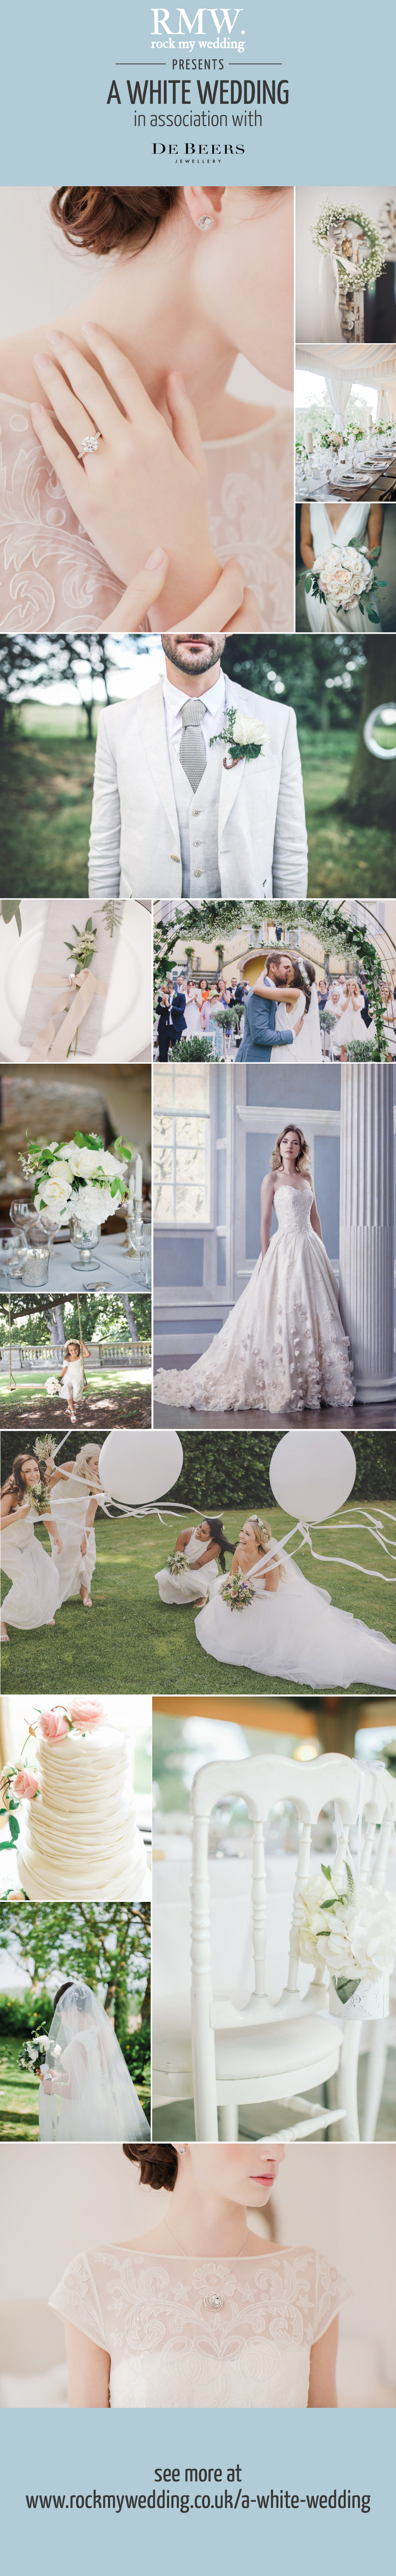 classic white colour scheme inspiration for your wedding day